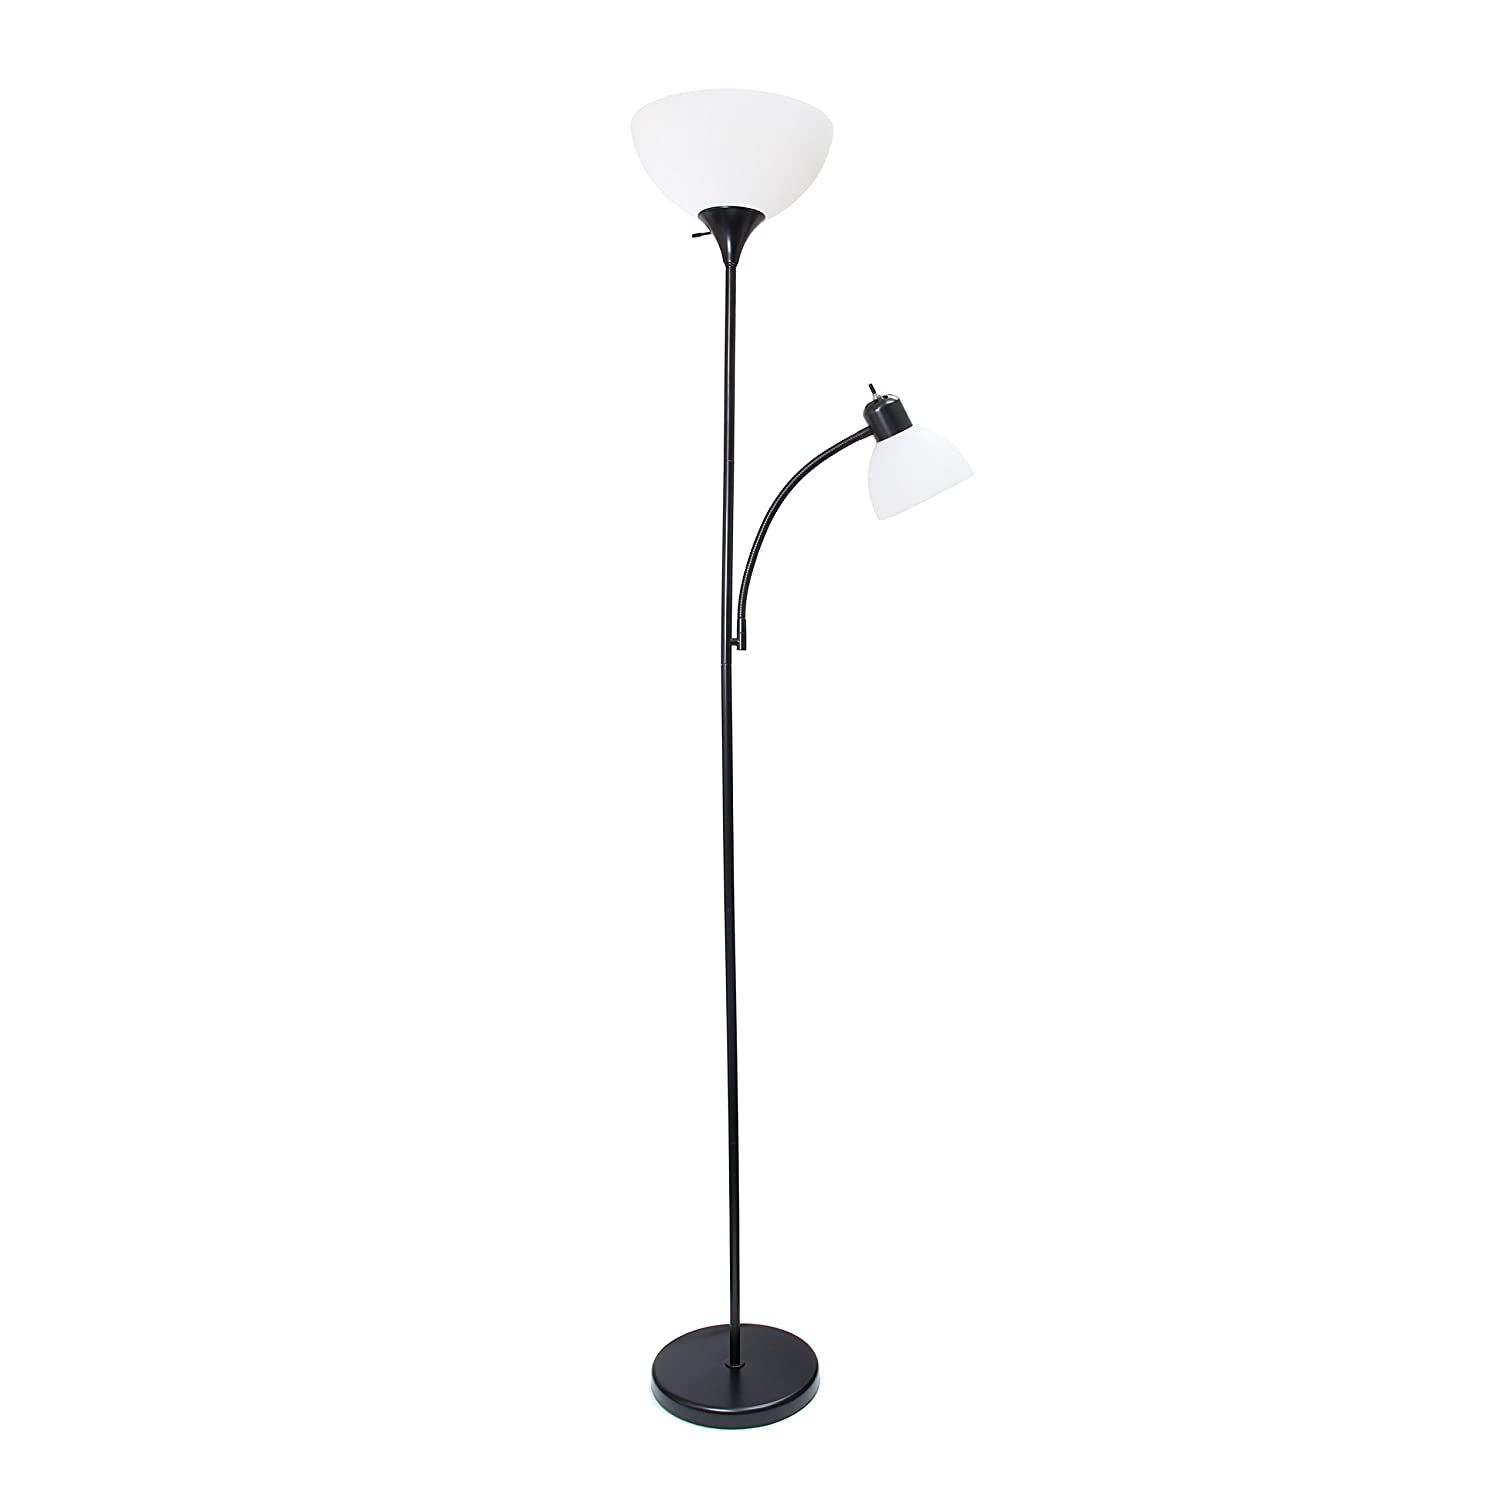 Simple Designs Home LF2000-BLK Mother-Daughter Floor Lamp with Reading Light 71 x 20.47 x 11.35 inches, Black